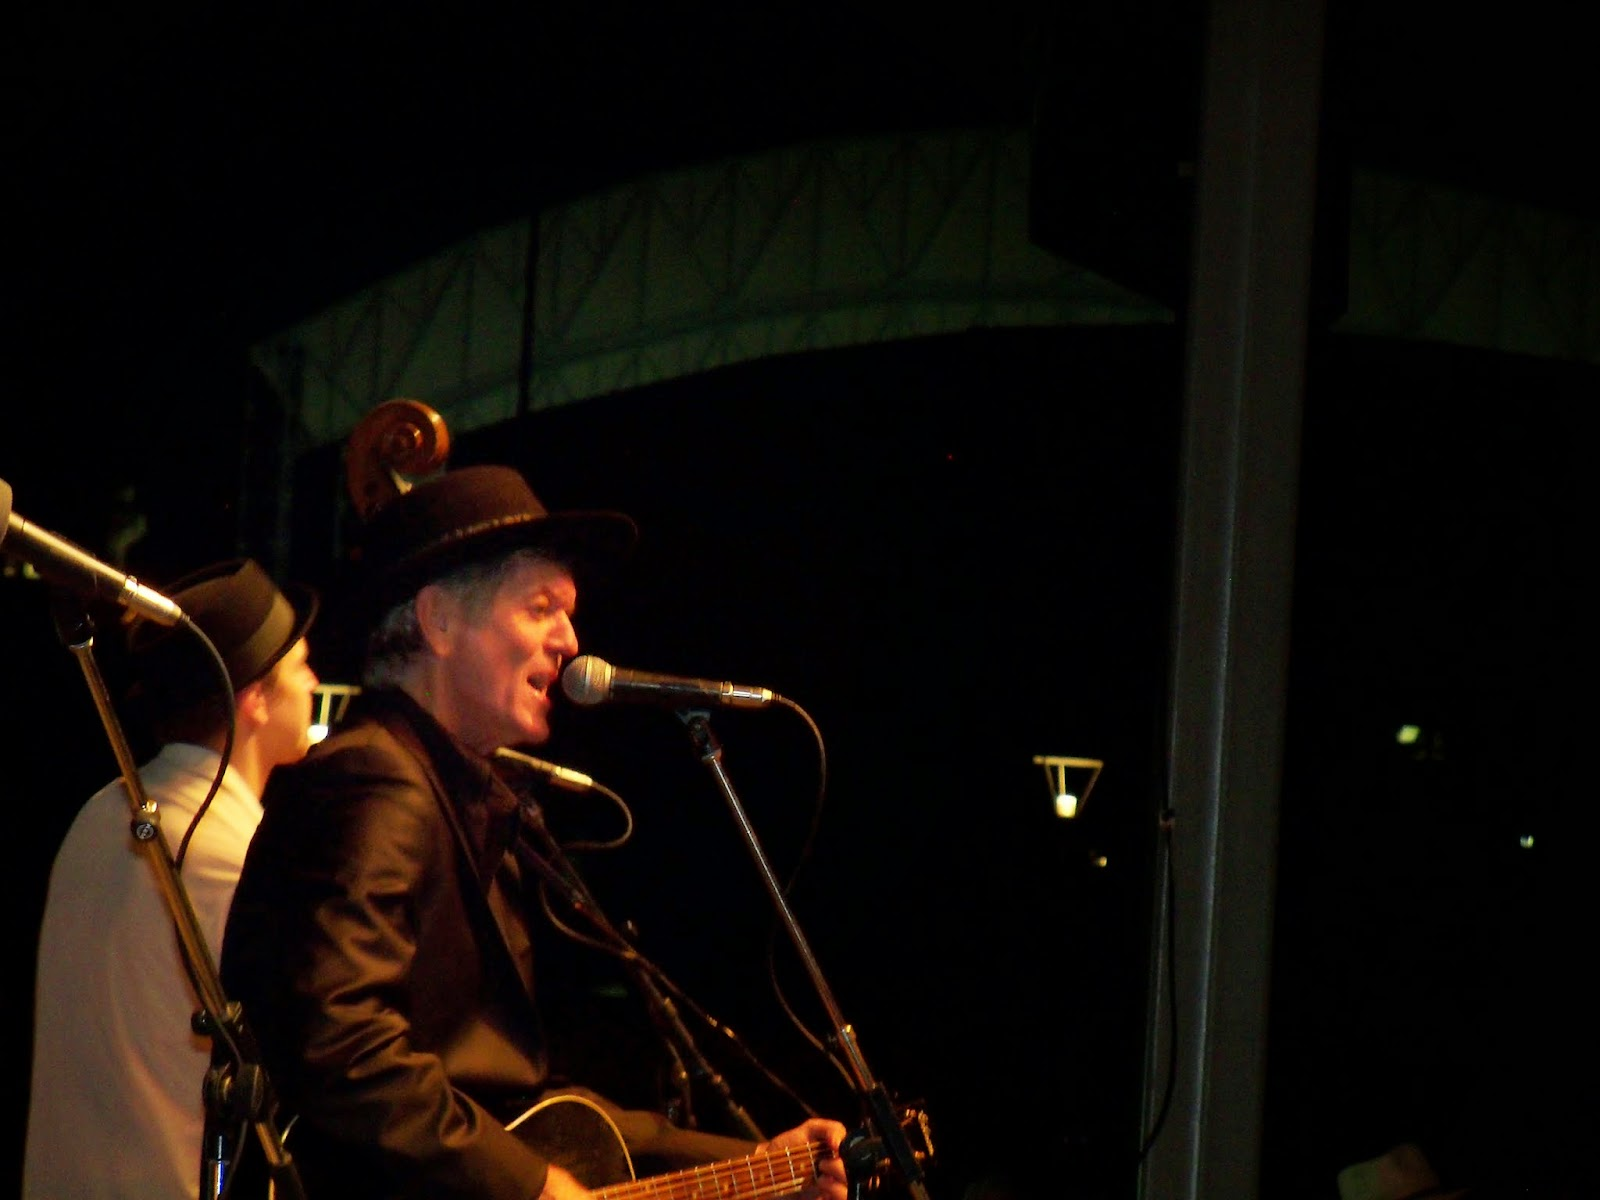 Downtown with Rodney Crowell - 116_4721.JPG